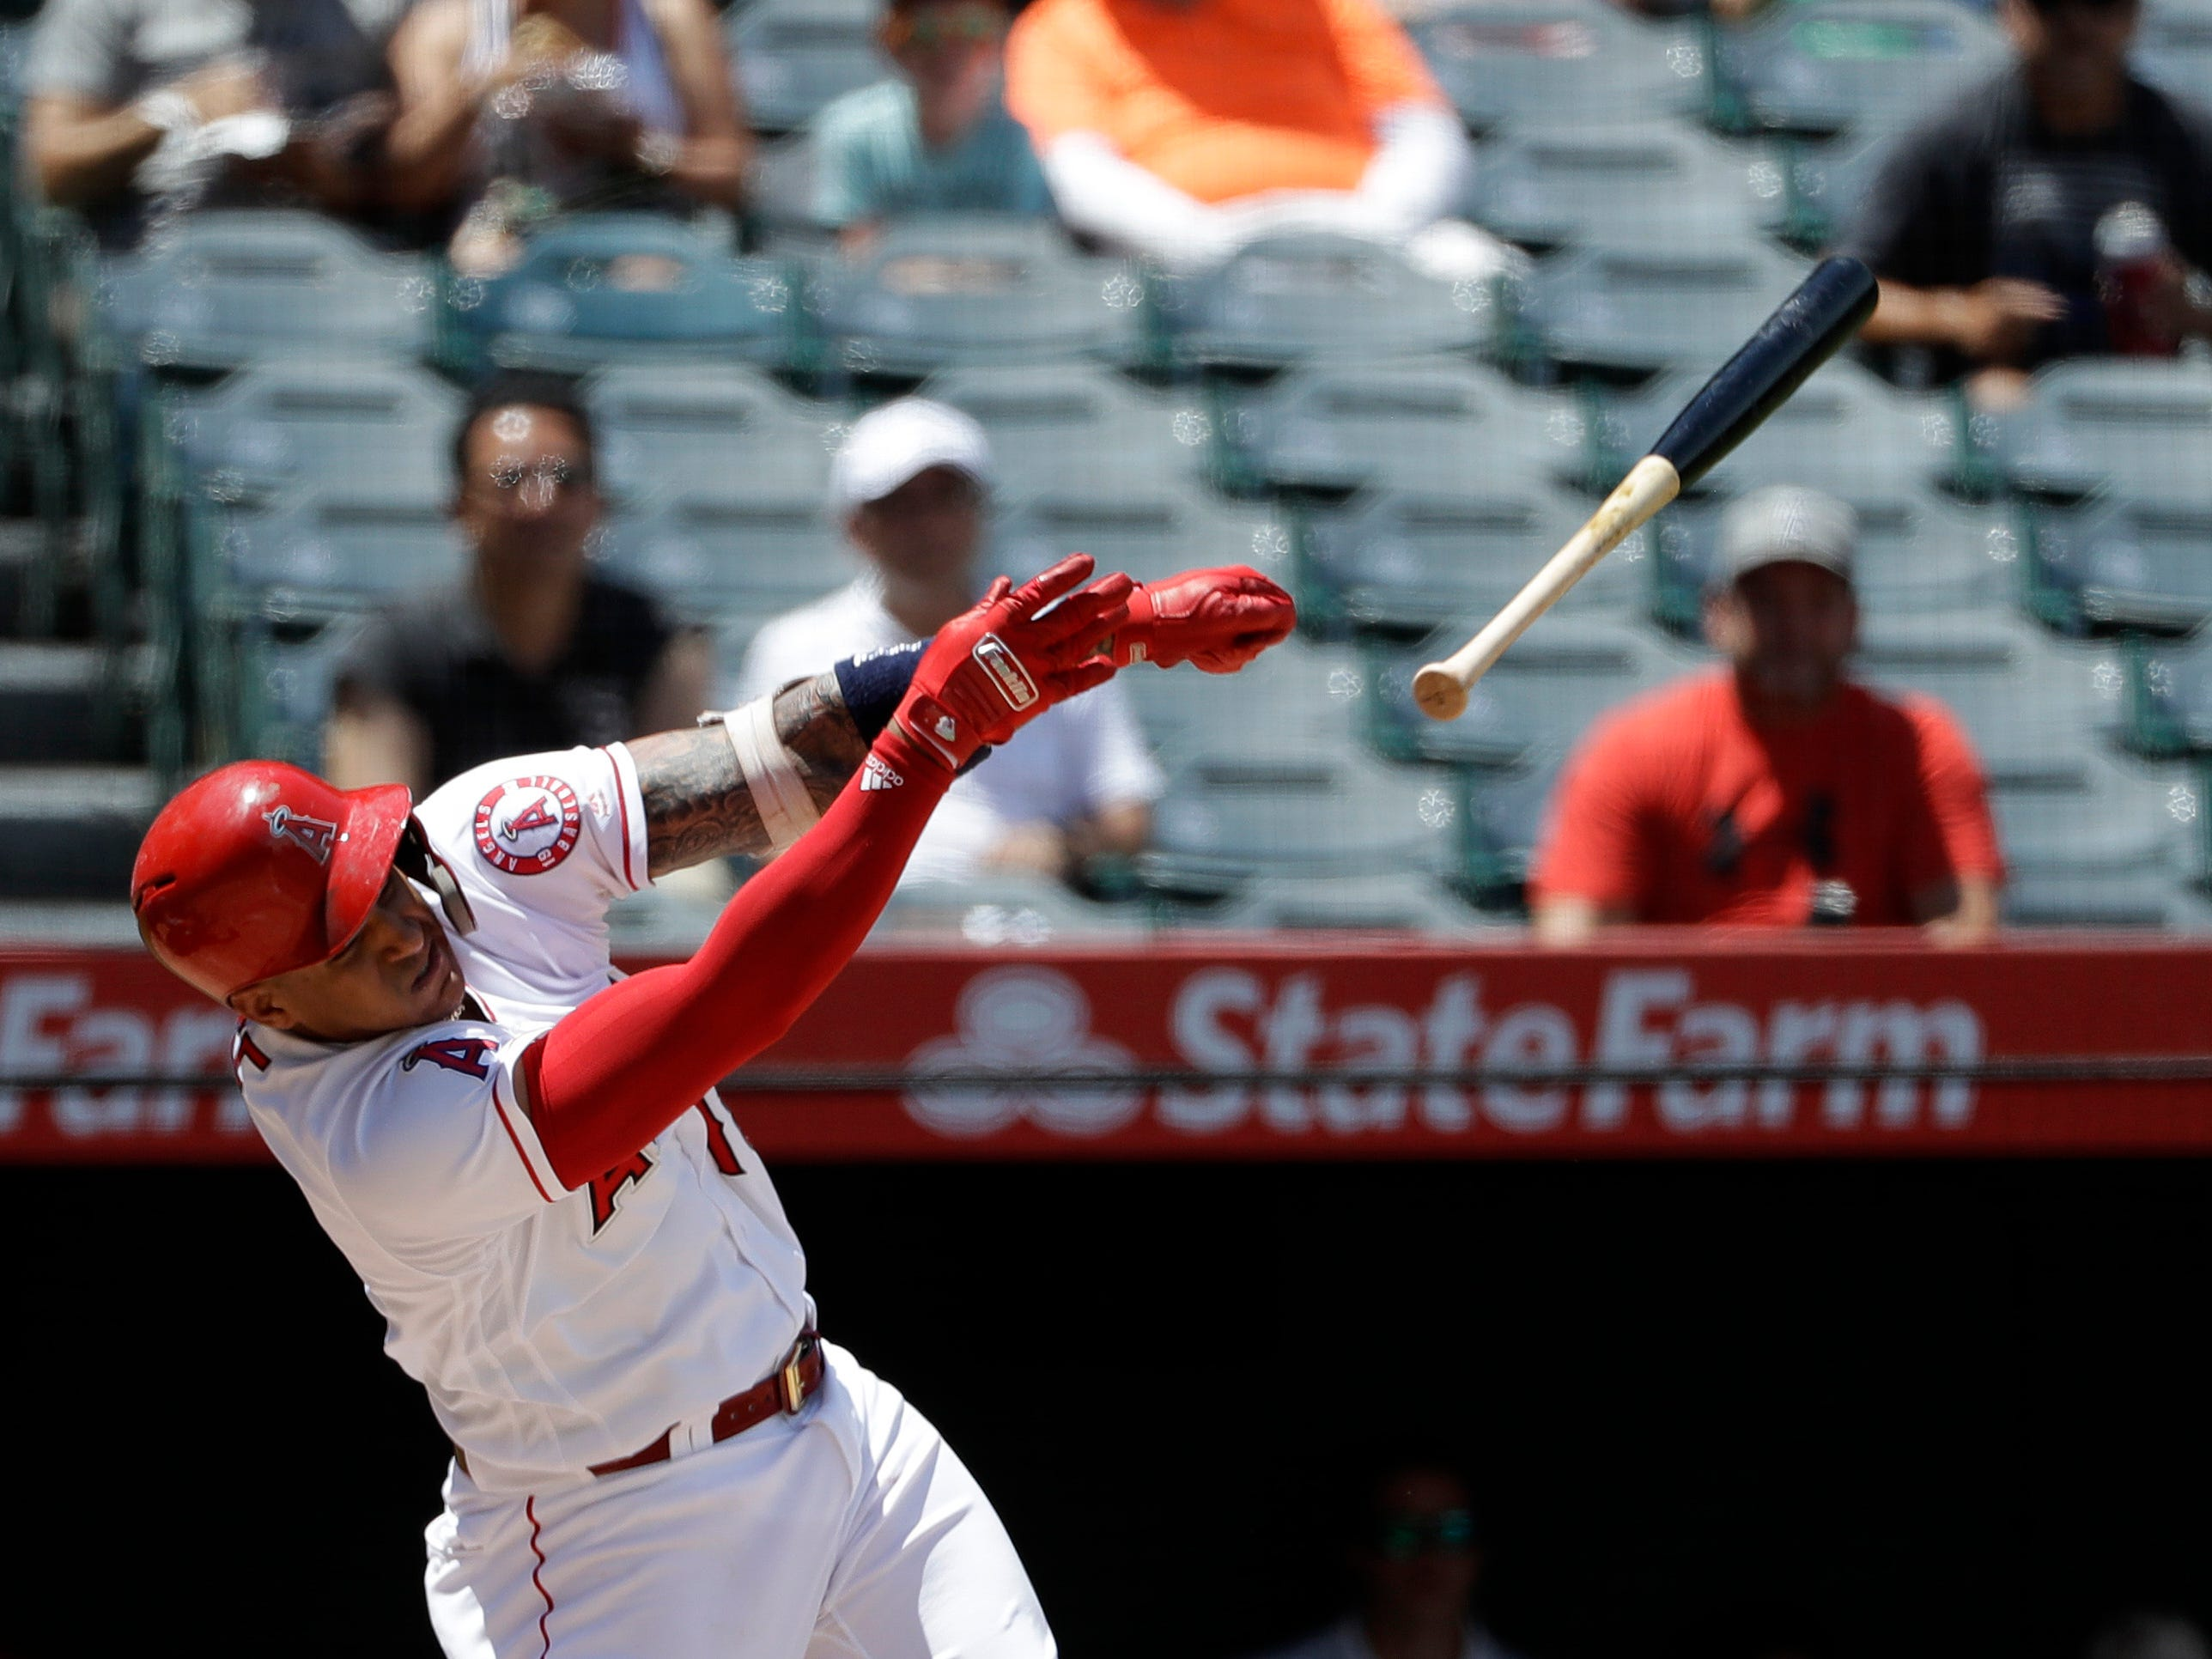 Los Angeles Angels' Jefry Marte loses his bat as he swings during the first inning of a baseball game against the Detroit Tigers, Wednesday, Aug. 8, 2018, in Anaheim, Calif.